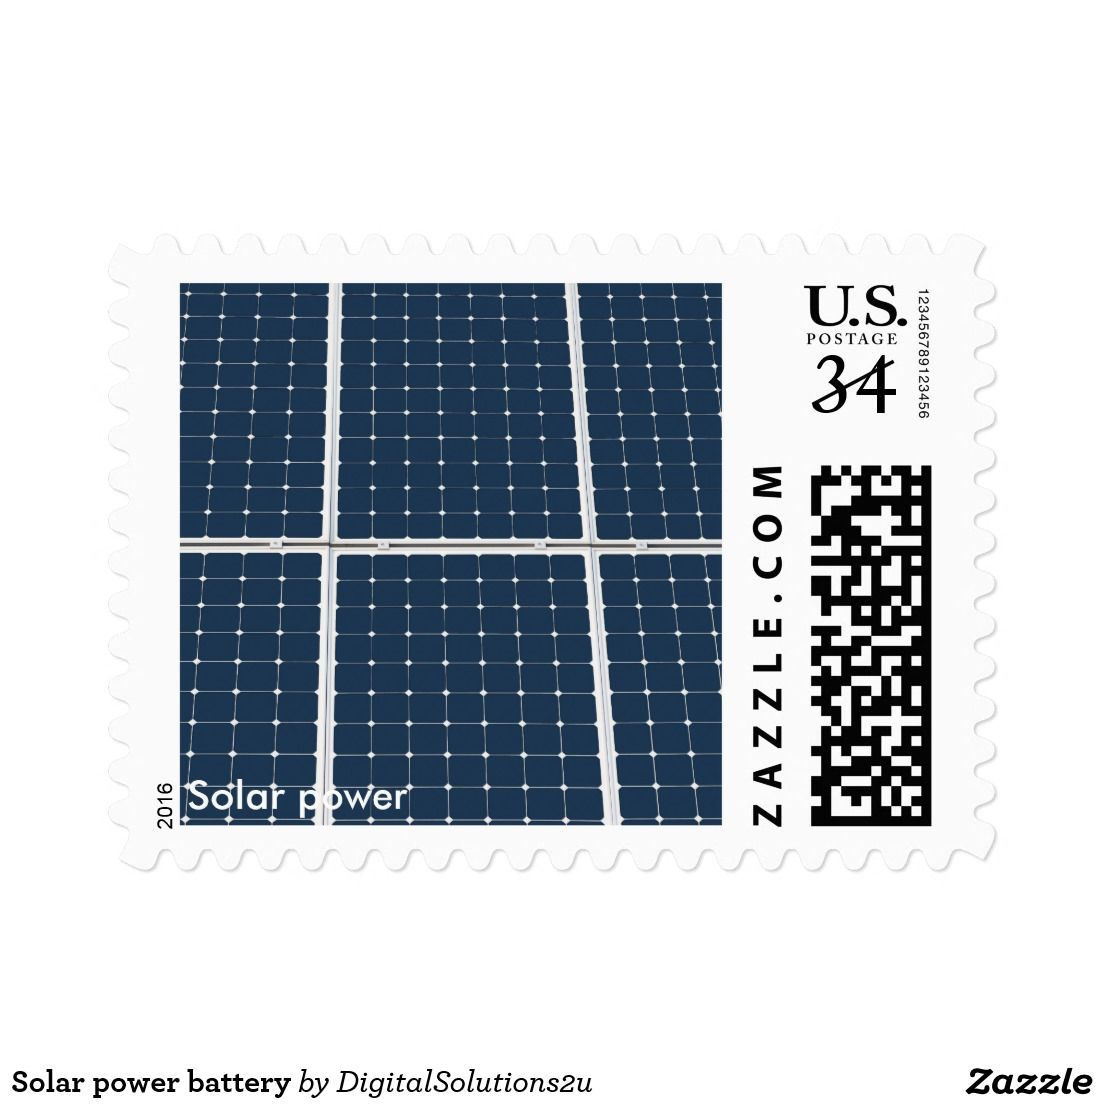 Solar power battery postage